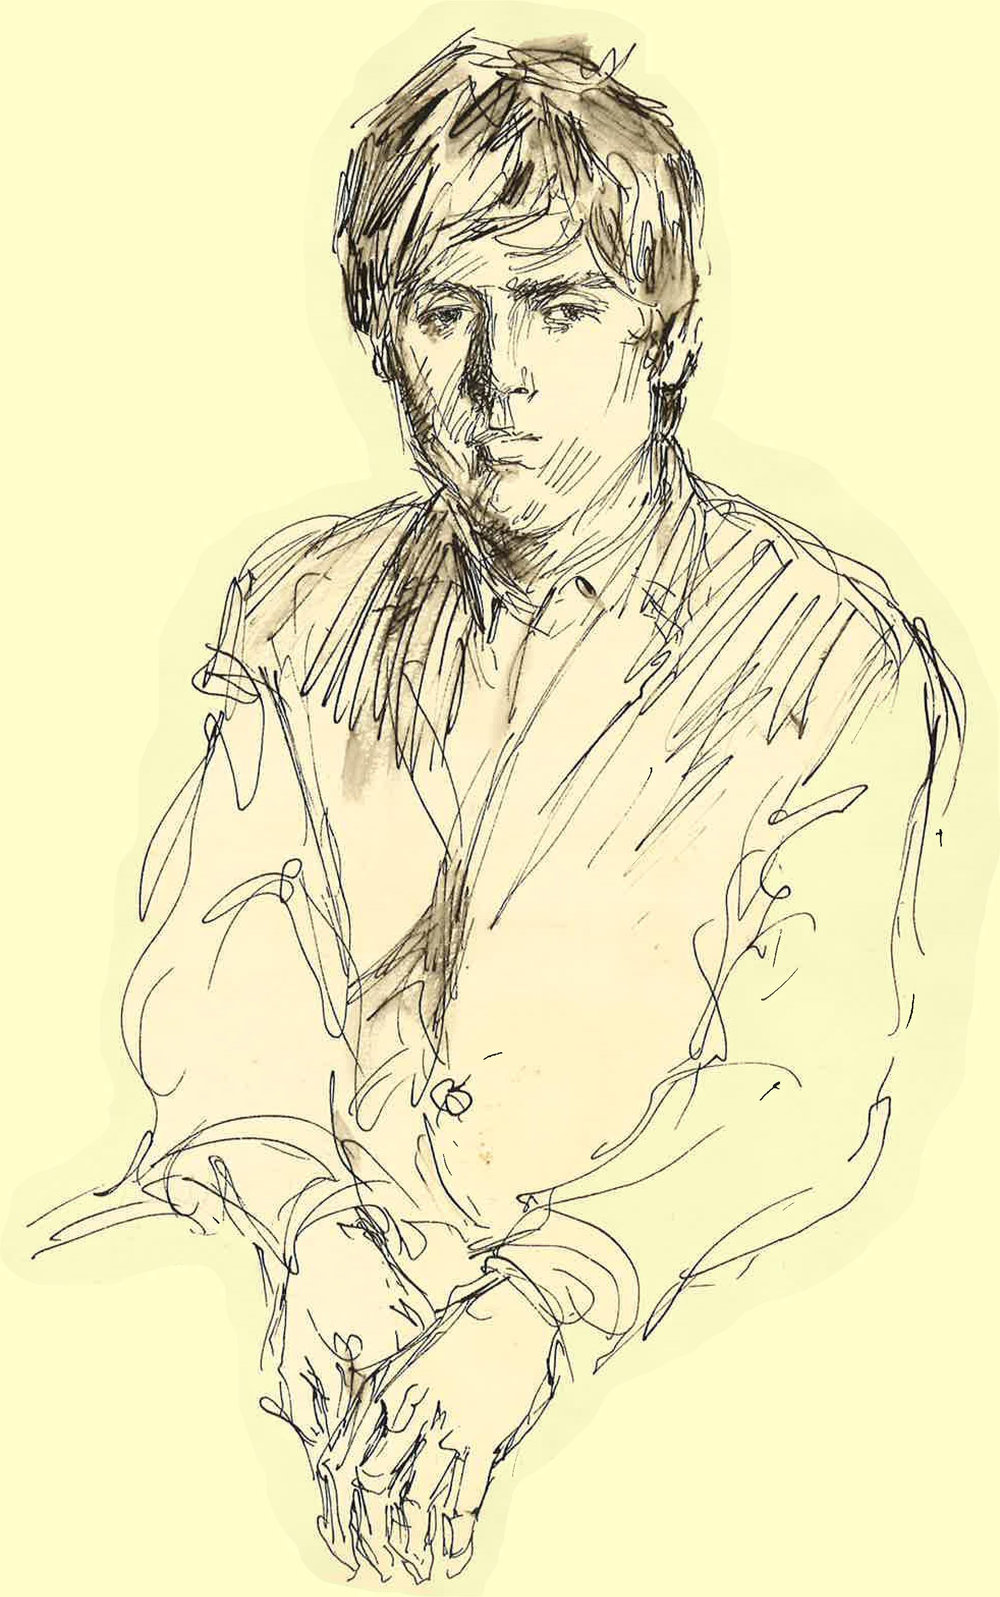 Igor Wakhevitch at 18 years old. Drawing by Serge Ivanov